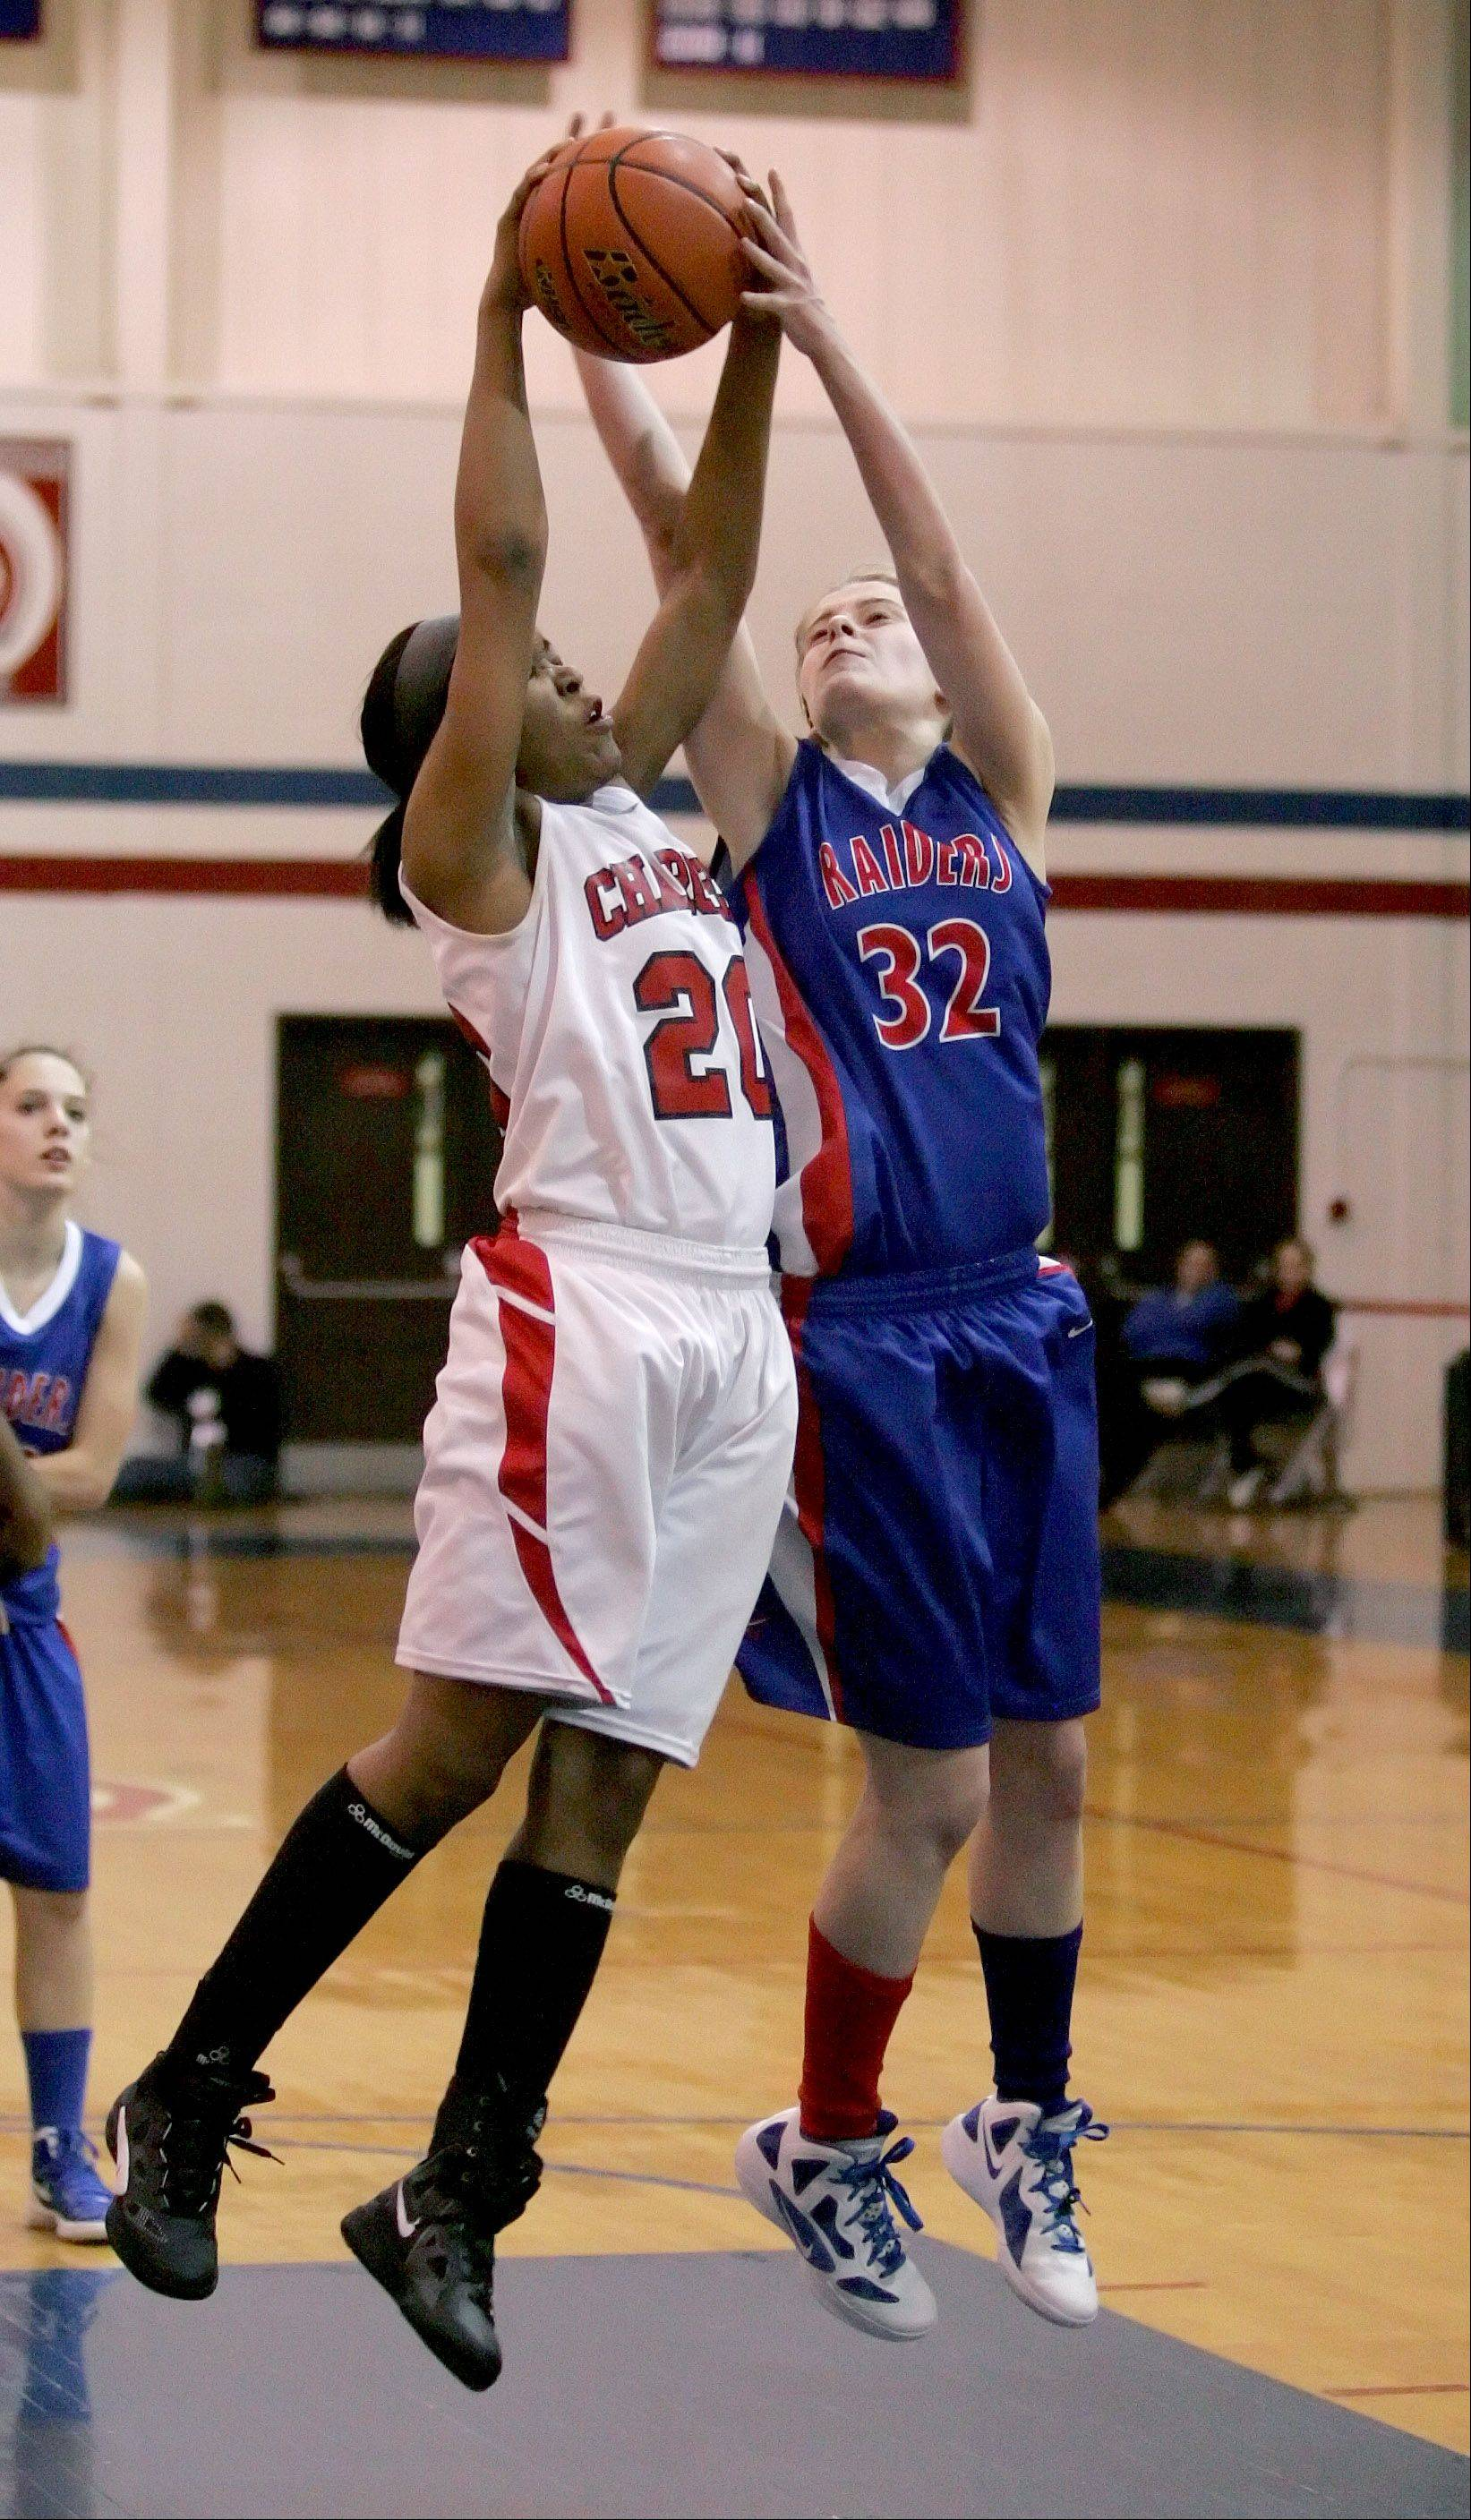 Tomei Ball, right, of Glenbard South and Briya Wilborn, left, of St. Joseph go up for a rebound .